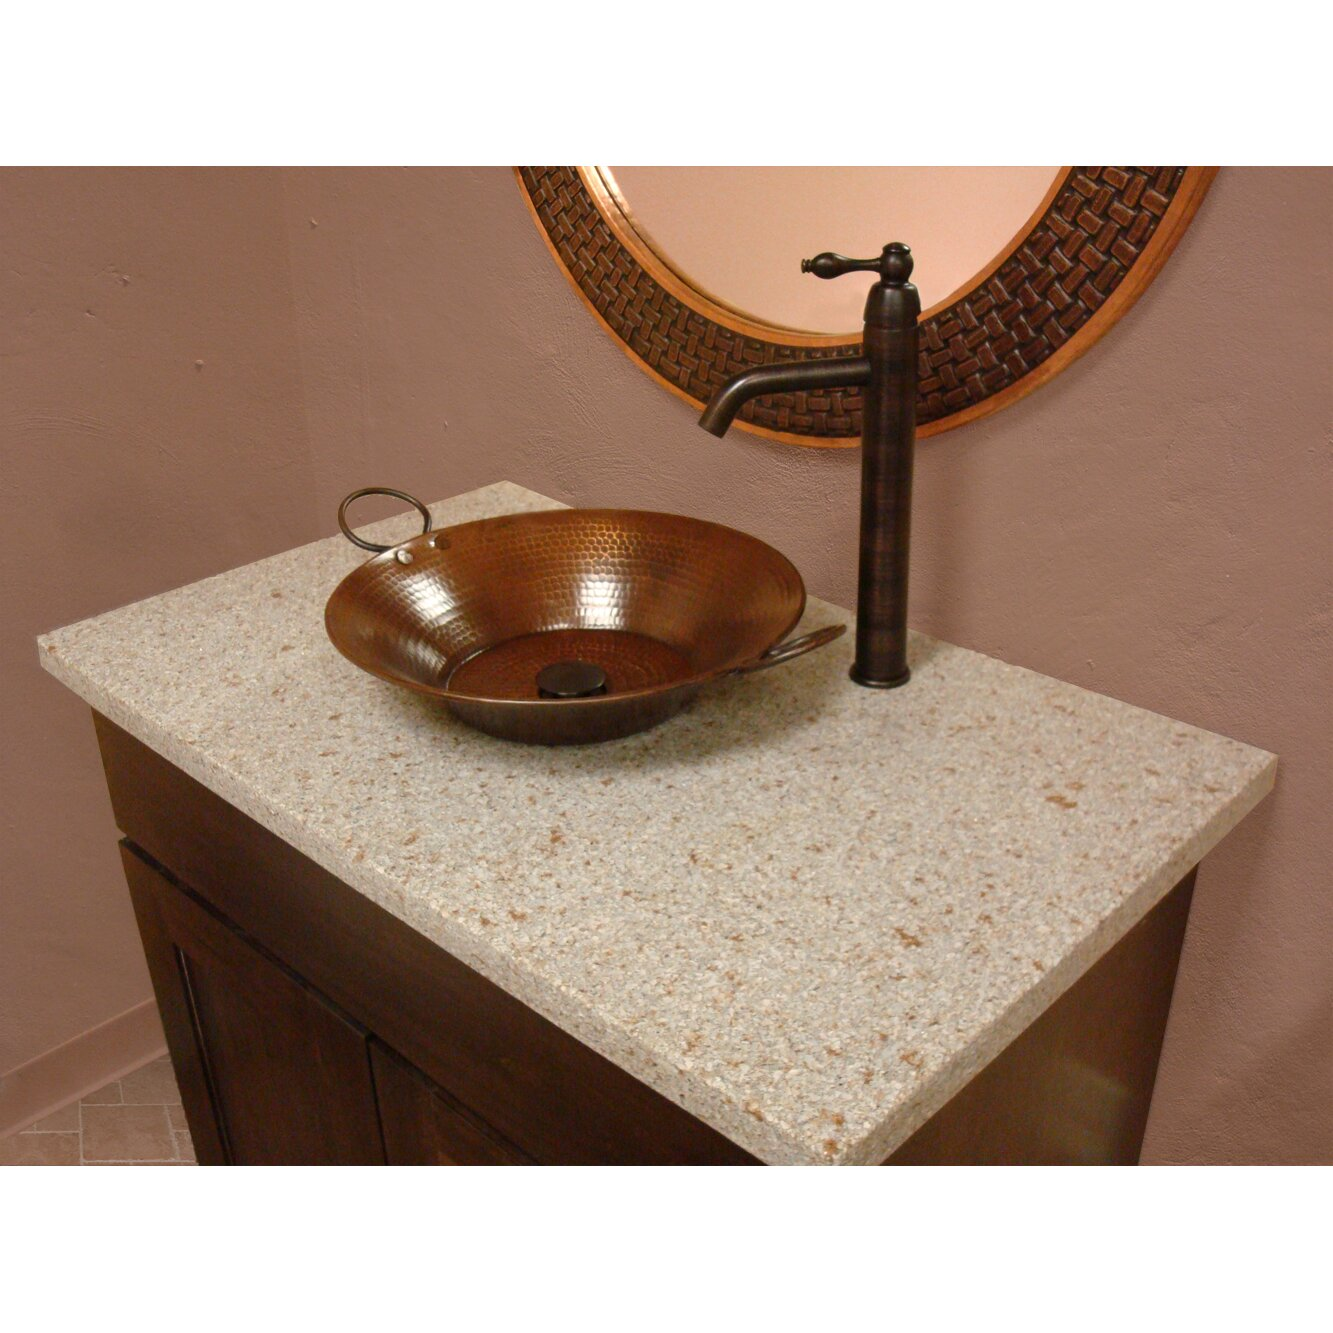 Premier copper products round miners pan hammered copper vessel bathroom sink reviews wayfair for Hammered copper bathroom sinks